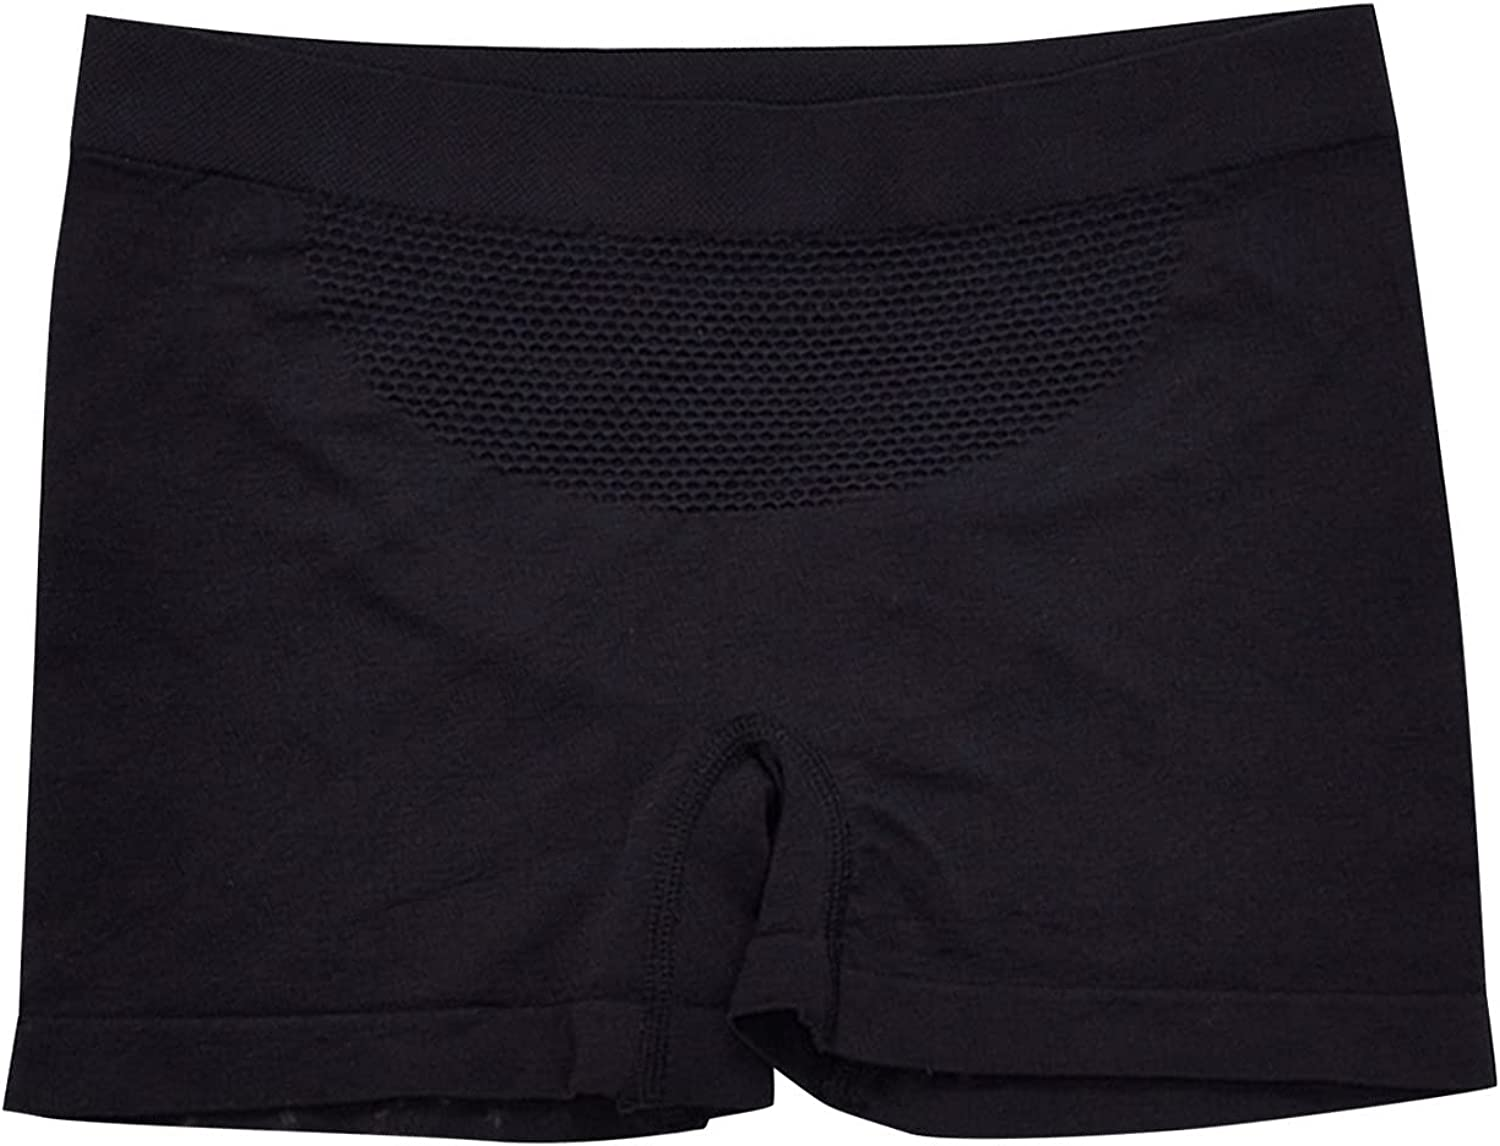 HUAIREN Women's Safety Shorts Underwear Hip Lift Tummy Control Plus Size Invisible Seamless Boxer Undershorts(1pc)